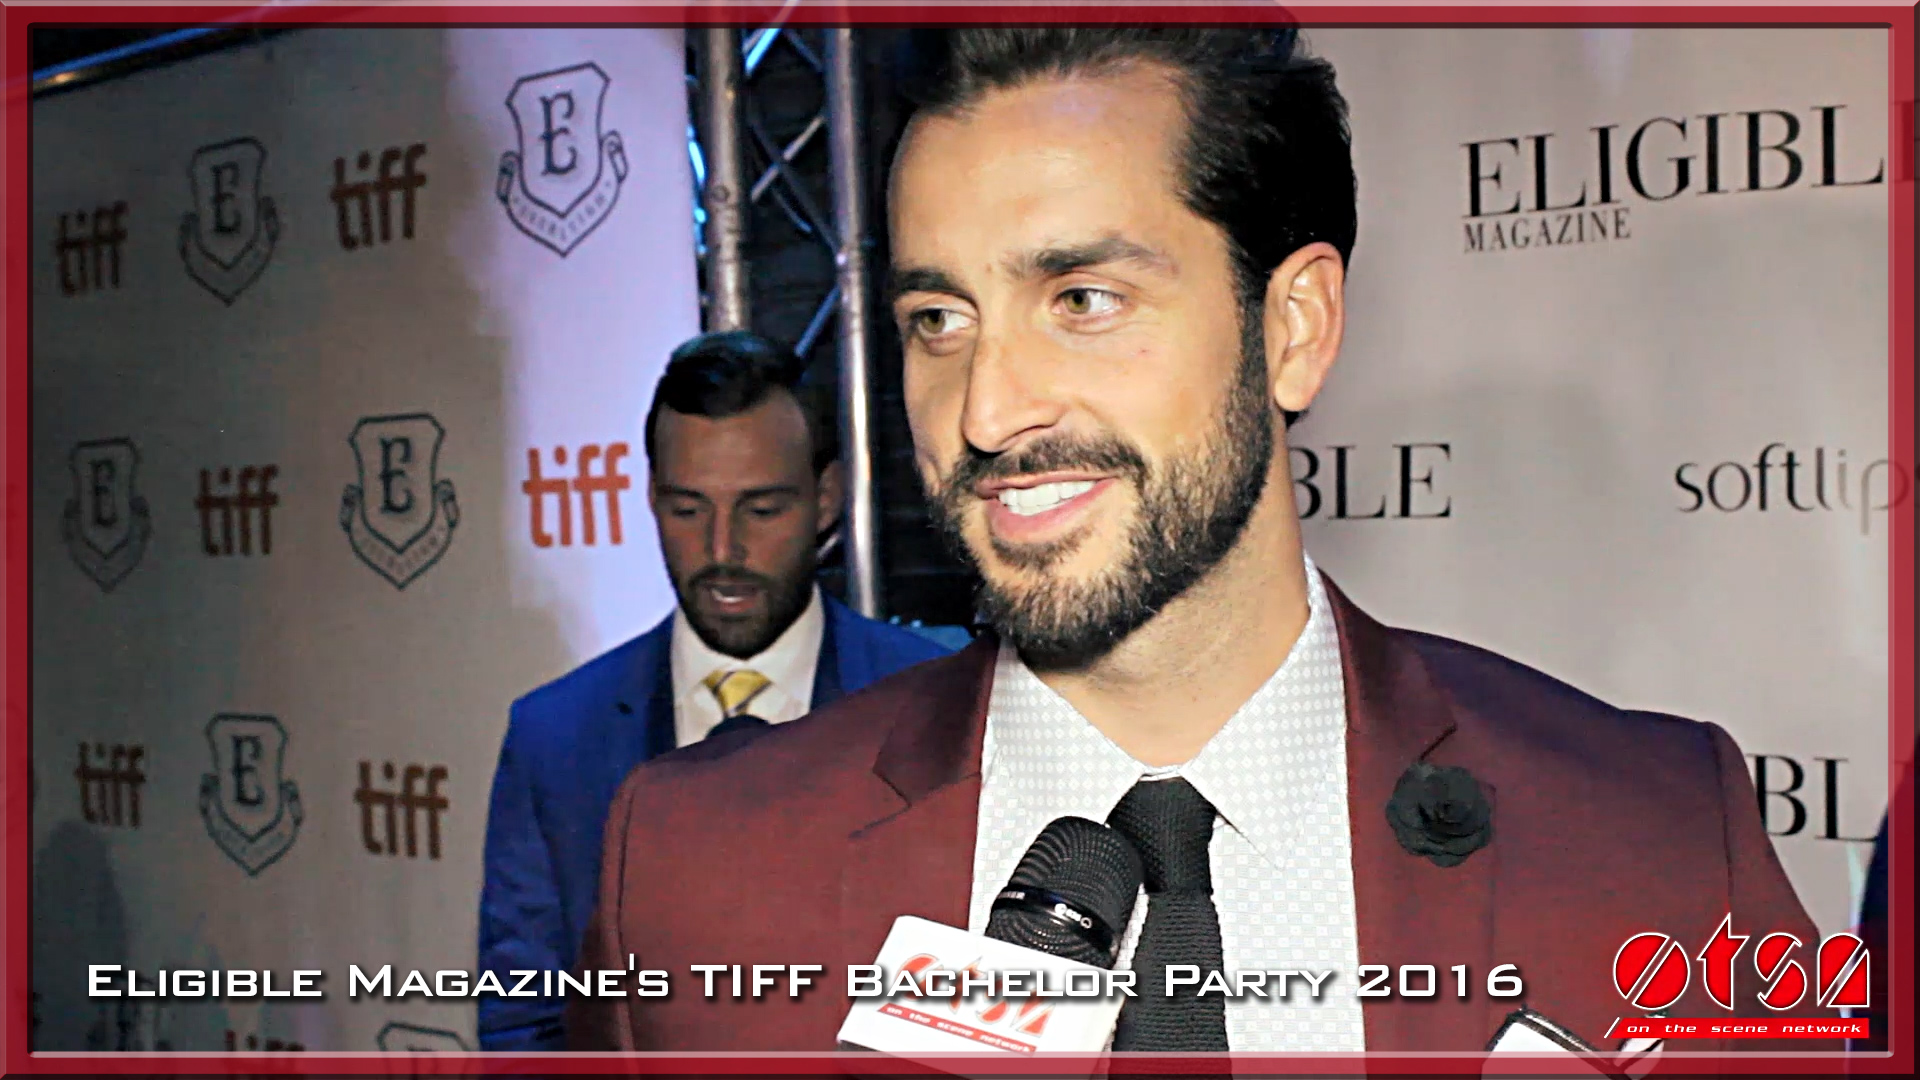 Eligible Magazine's TIFF Bachelor Party 2016